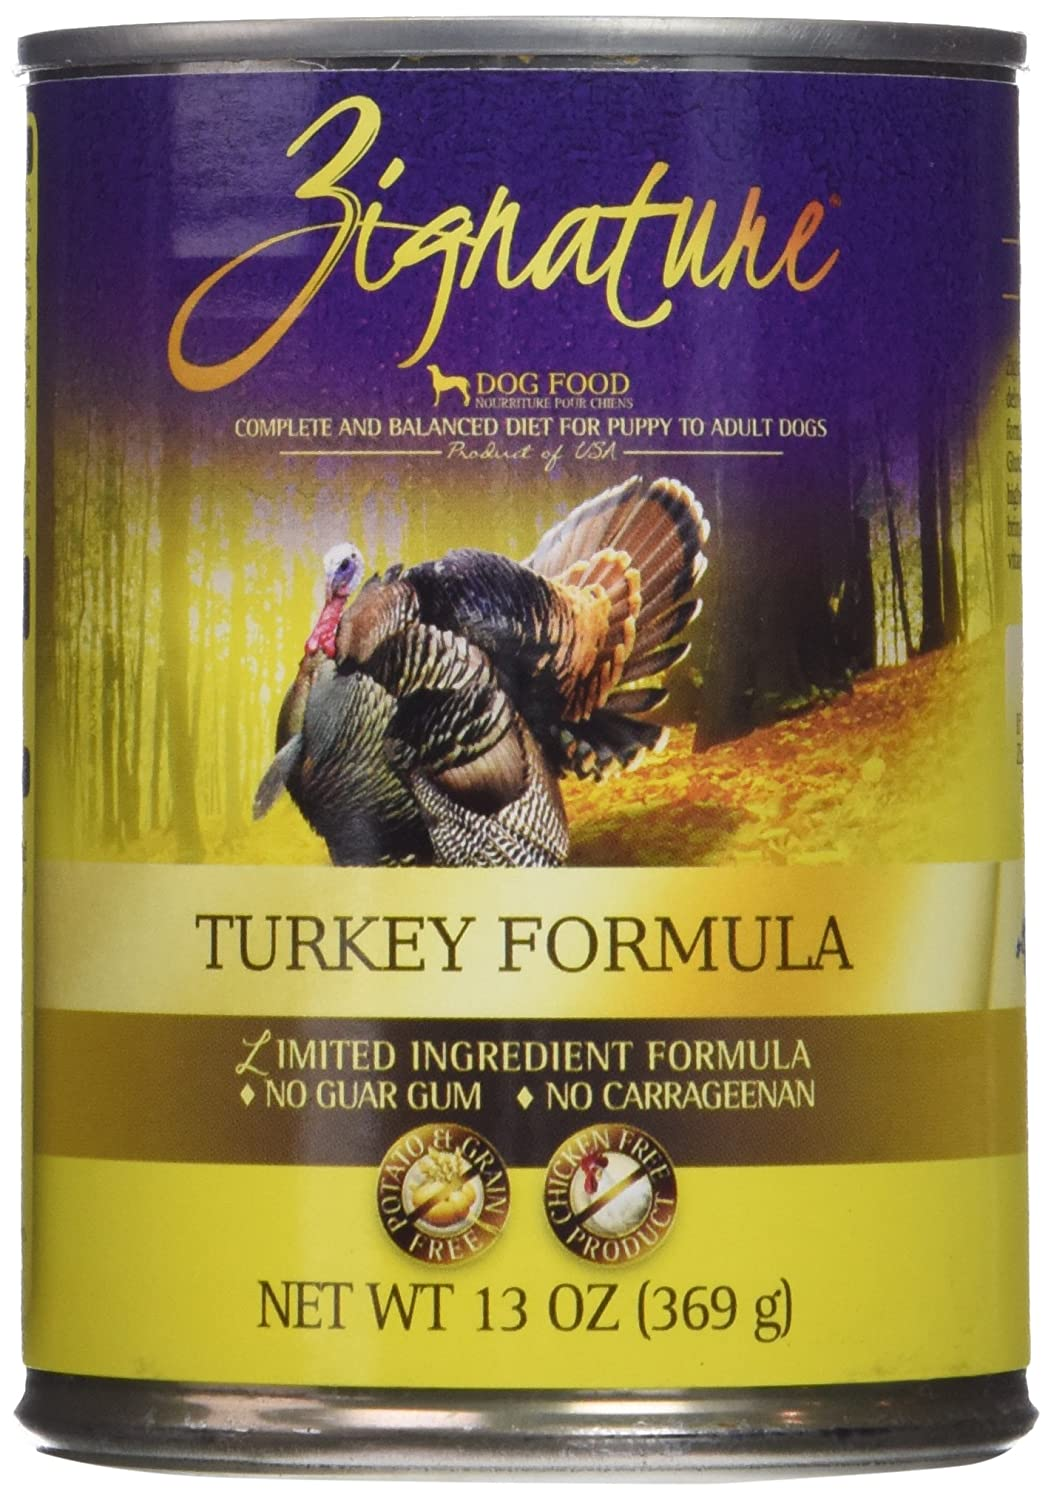 Zignature Turkey Formula Canned Dog Food, 13 Oz 12 Cans In A Case